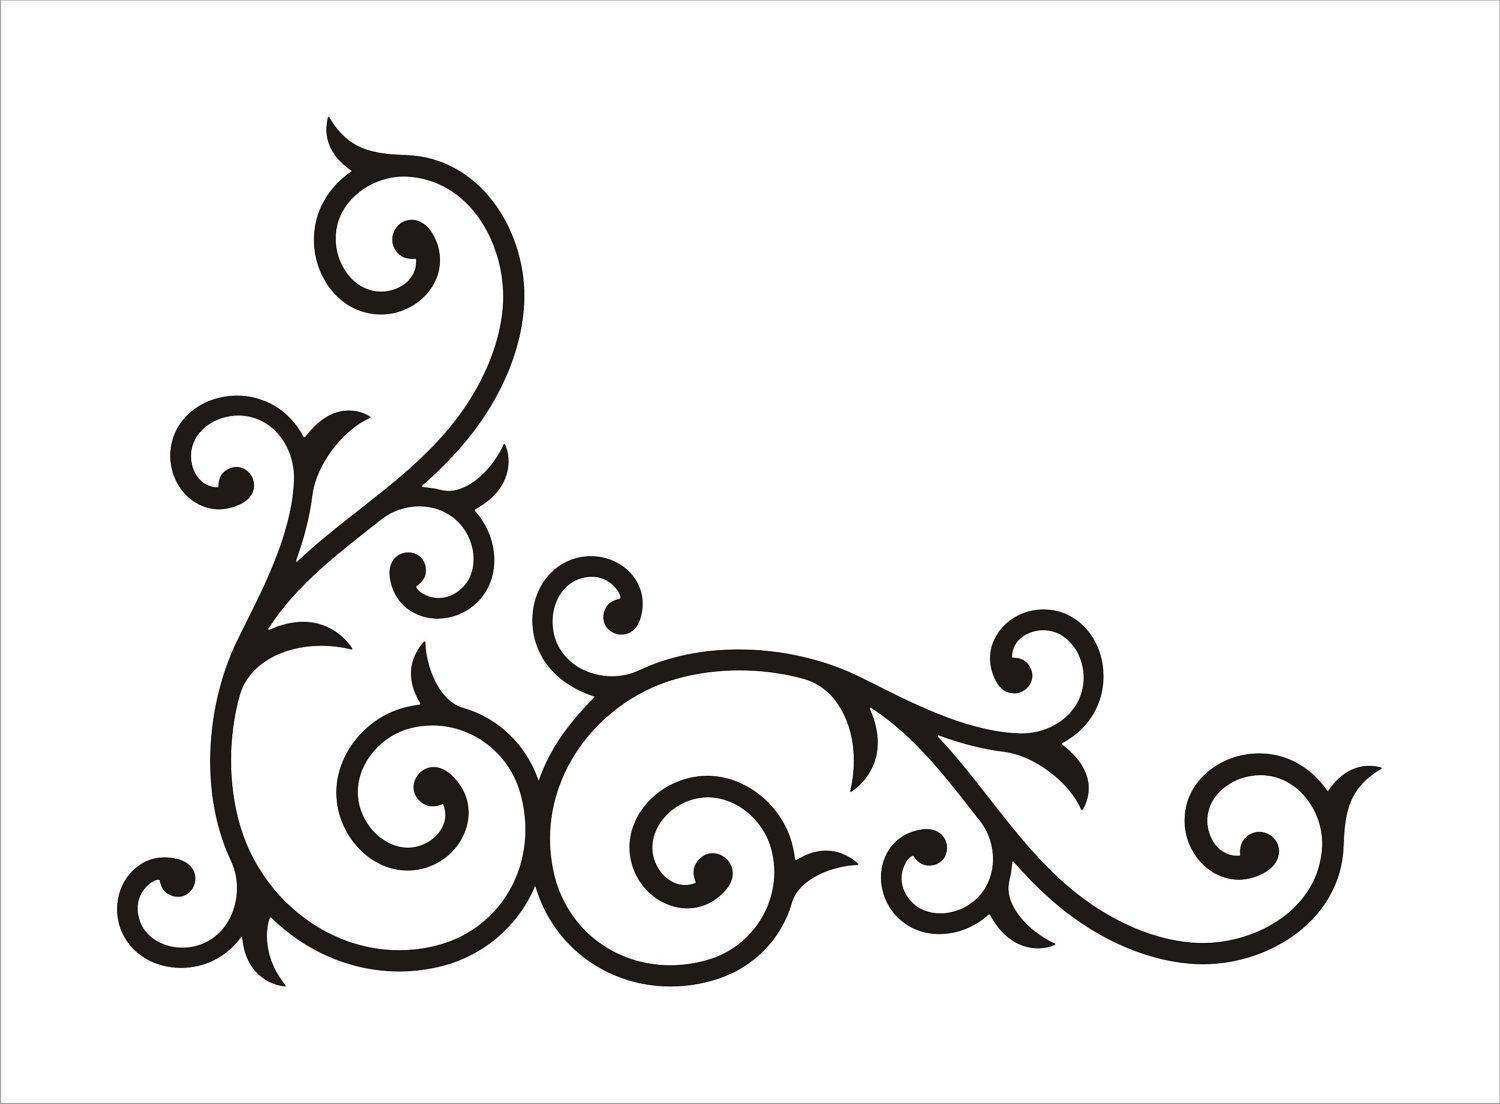 ... Free Clipart Images. Scroll Work Cor-... Free Clipart Images. Scroll Work Corner Template - NextInvitation  Templates-9